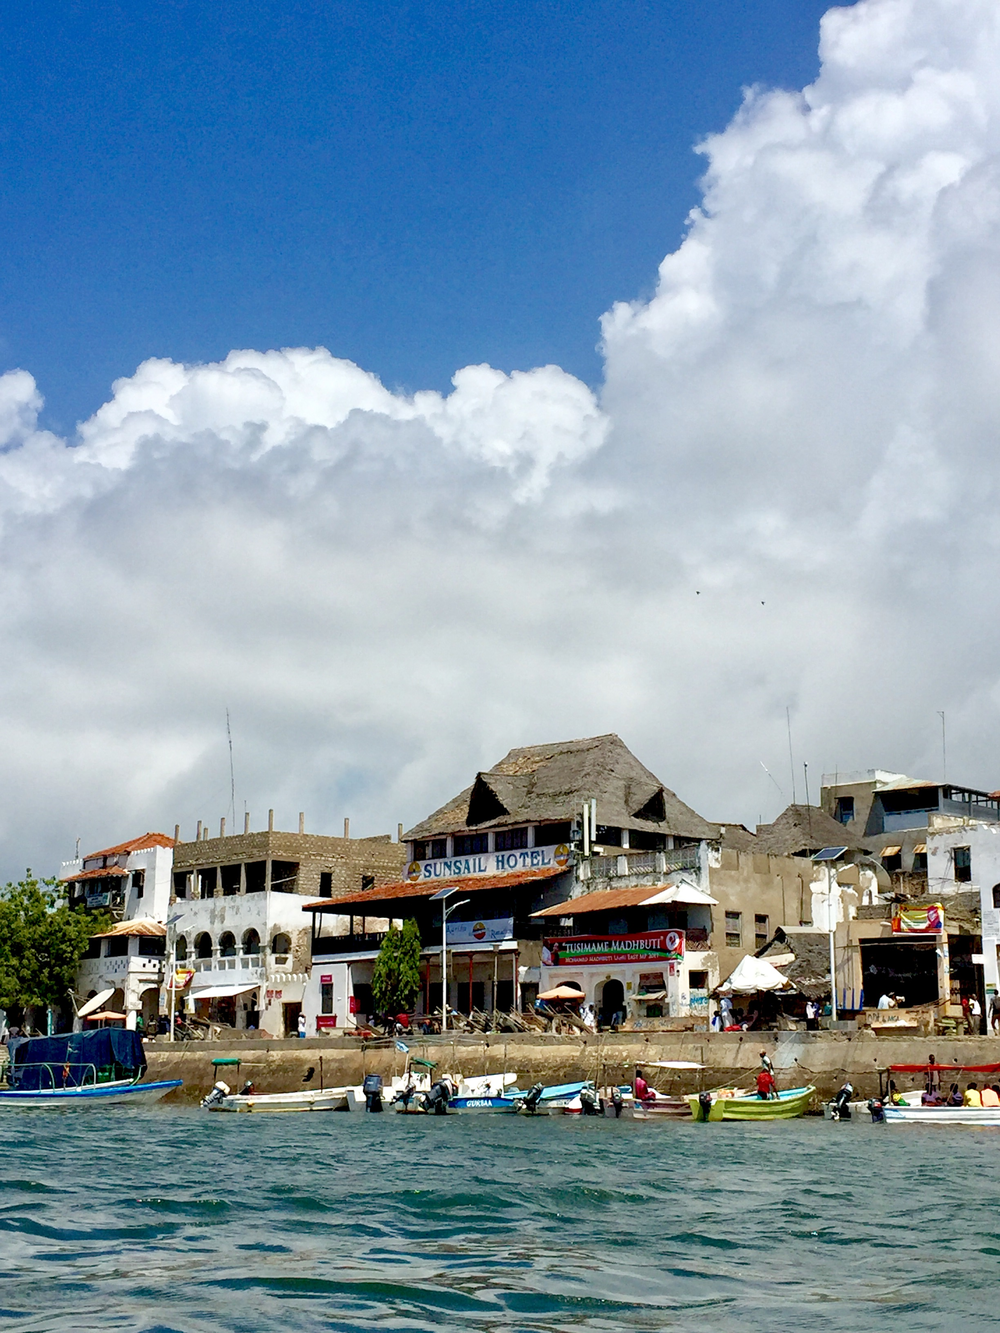 Lamu Island, the headquarters of Lamu County and site of Kenya's oldest town